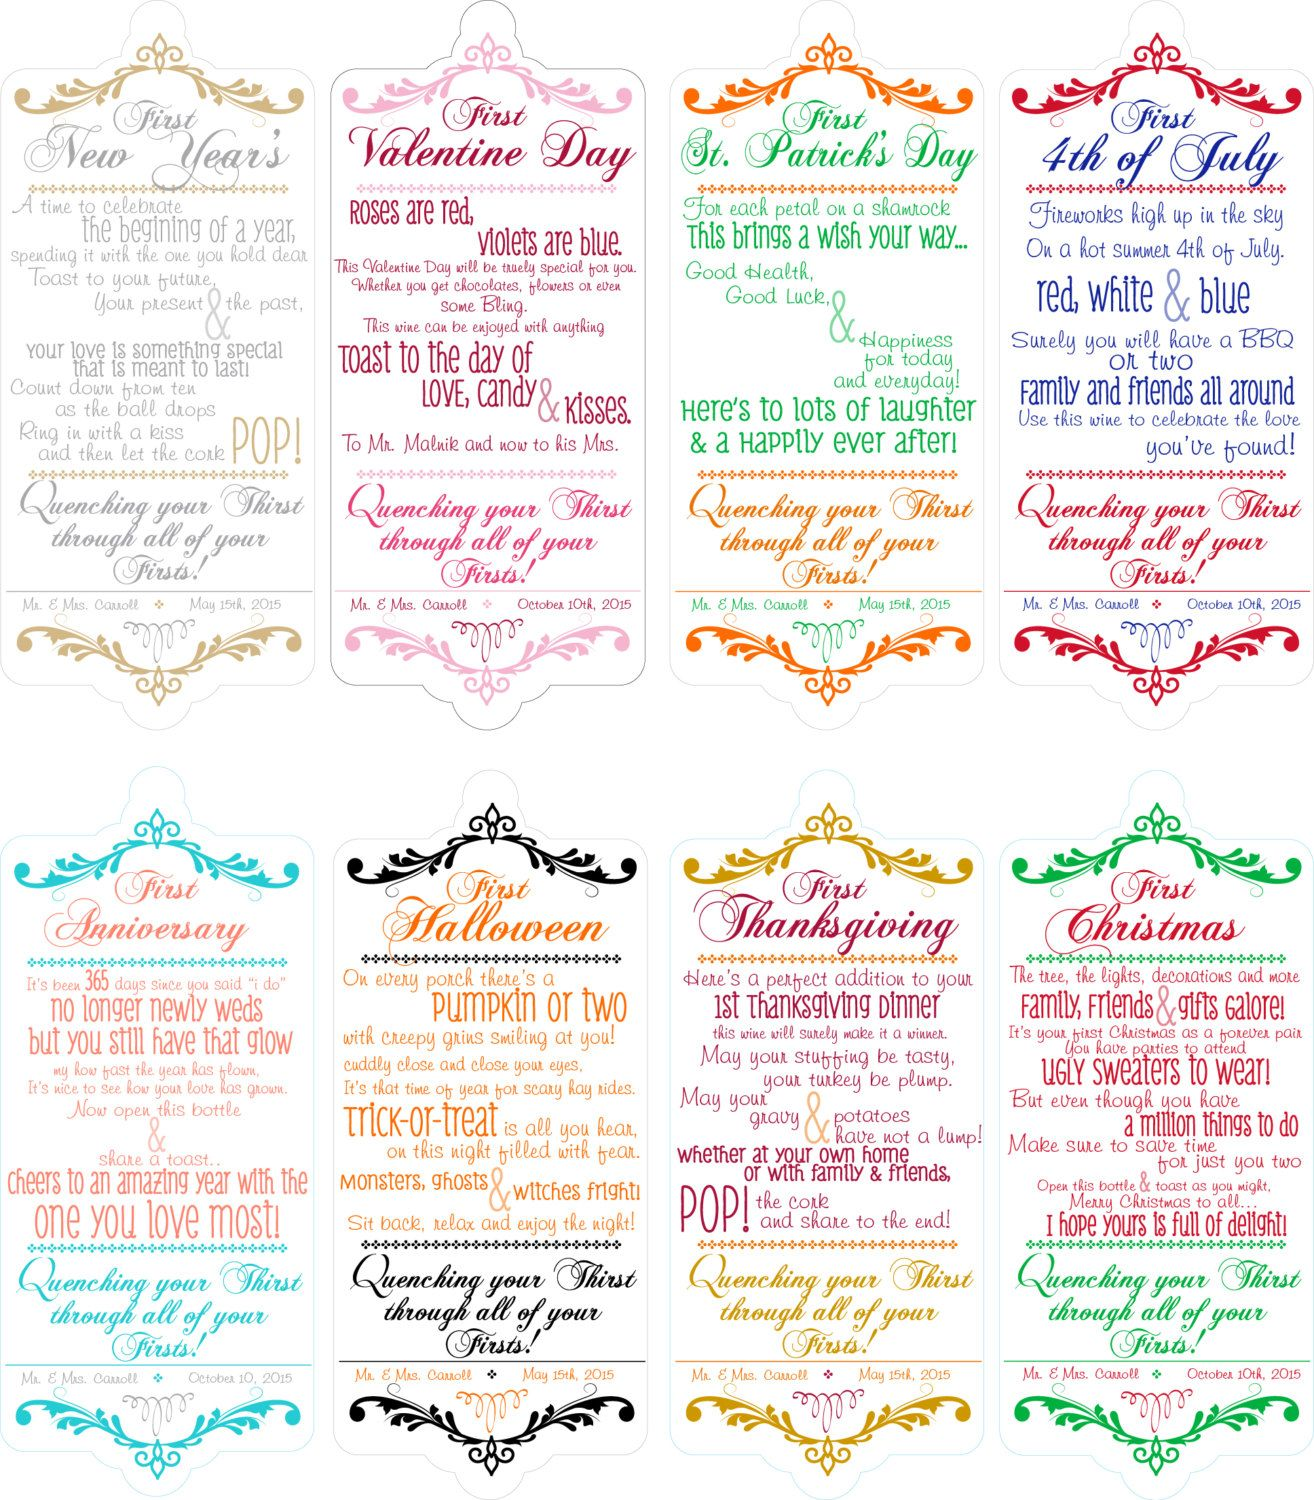 Halloween Wedding Gift Ideas: Bridal Shower Wine Poems For Wine Basket- 8 HOLIDAY THEMED